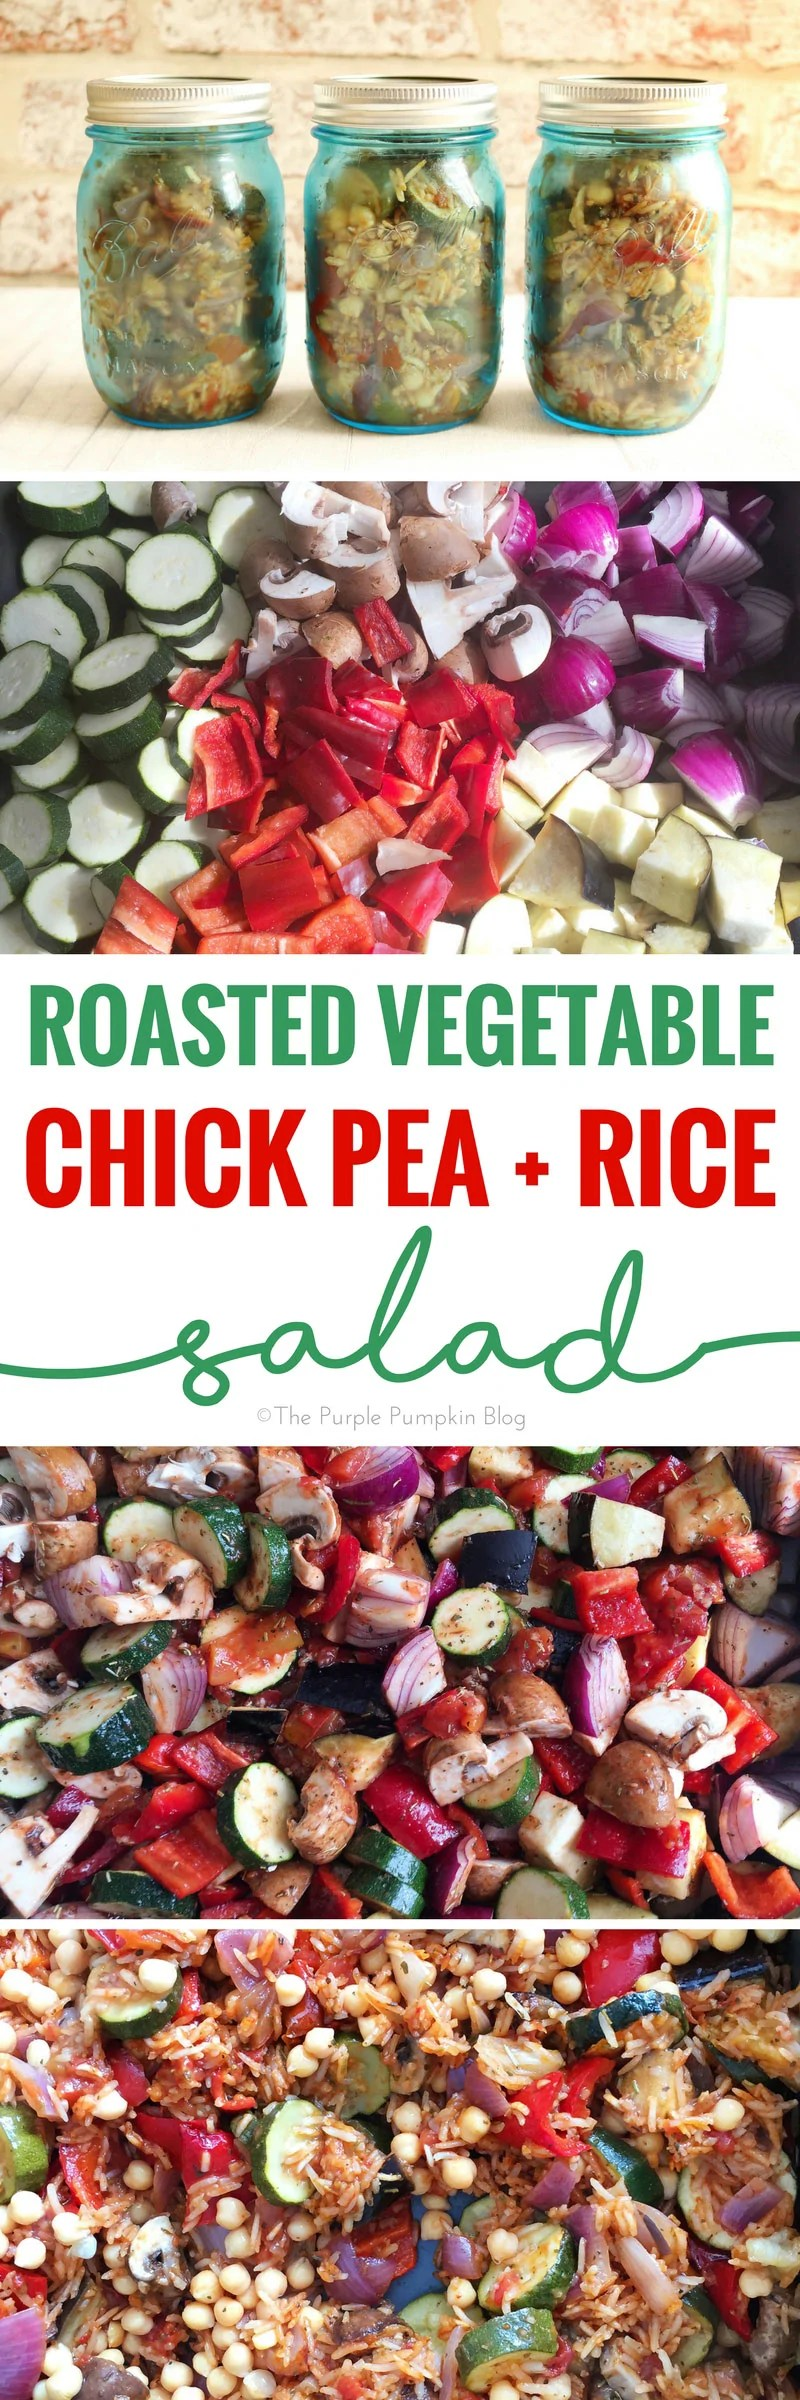 This Roasted Vegetable, Chick Pea & Rice Salad is easy to prepare and can be cooked all in one pan! It's a great salad to eat as a meal in itself, or as a side to barbecued meat and fish. It's very versatile and can be eaten both hot and cold, and keeps well for a few days as a mason jar salad. A tasty recipe to pin!